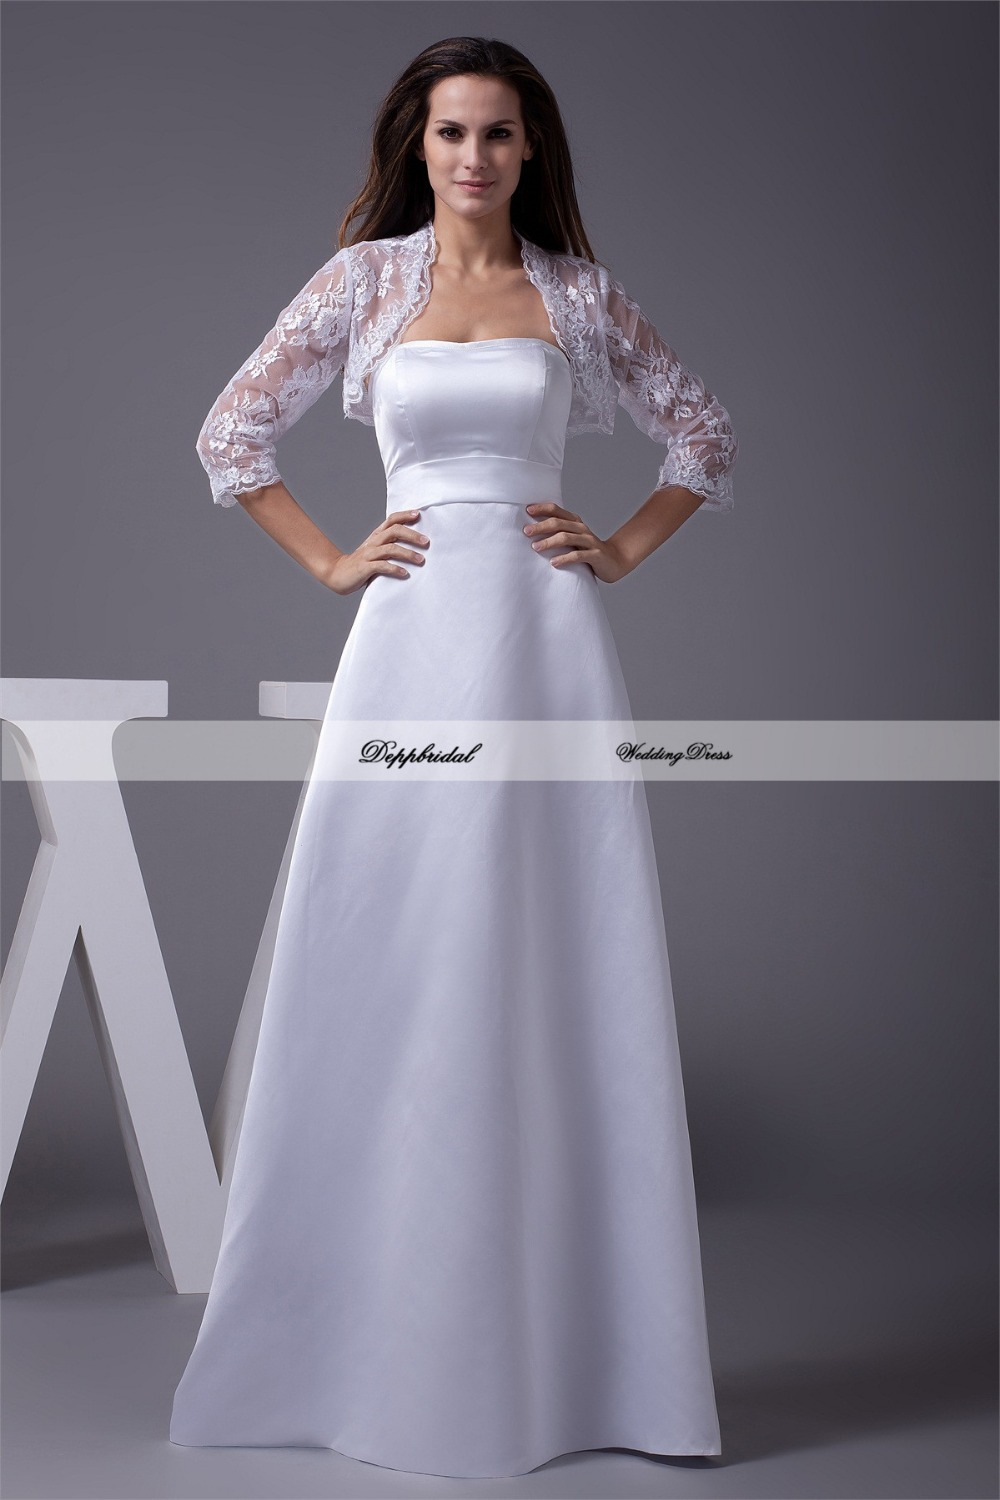 buy wholesale wedding dress satin strapless sashes